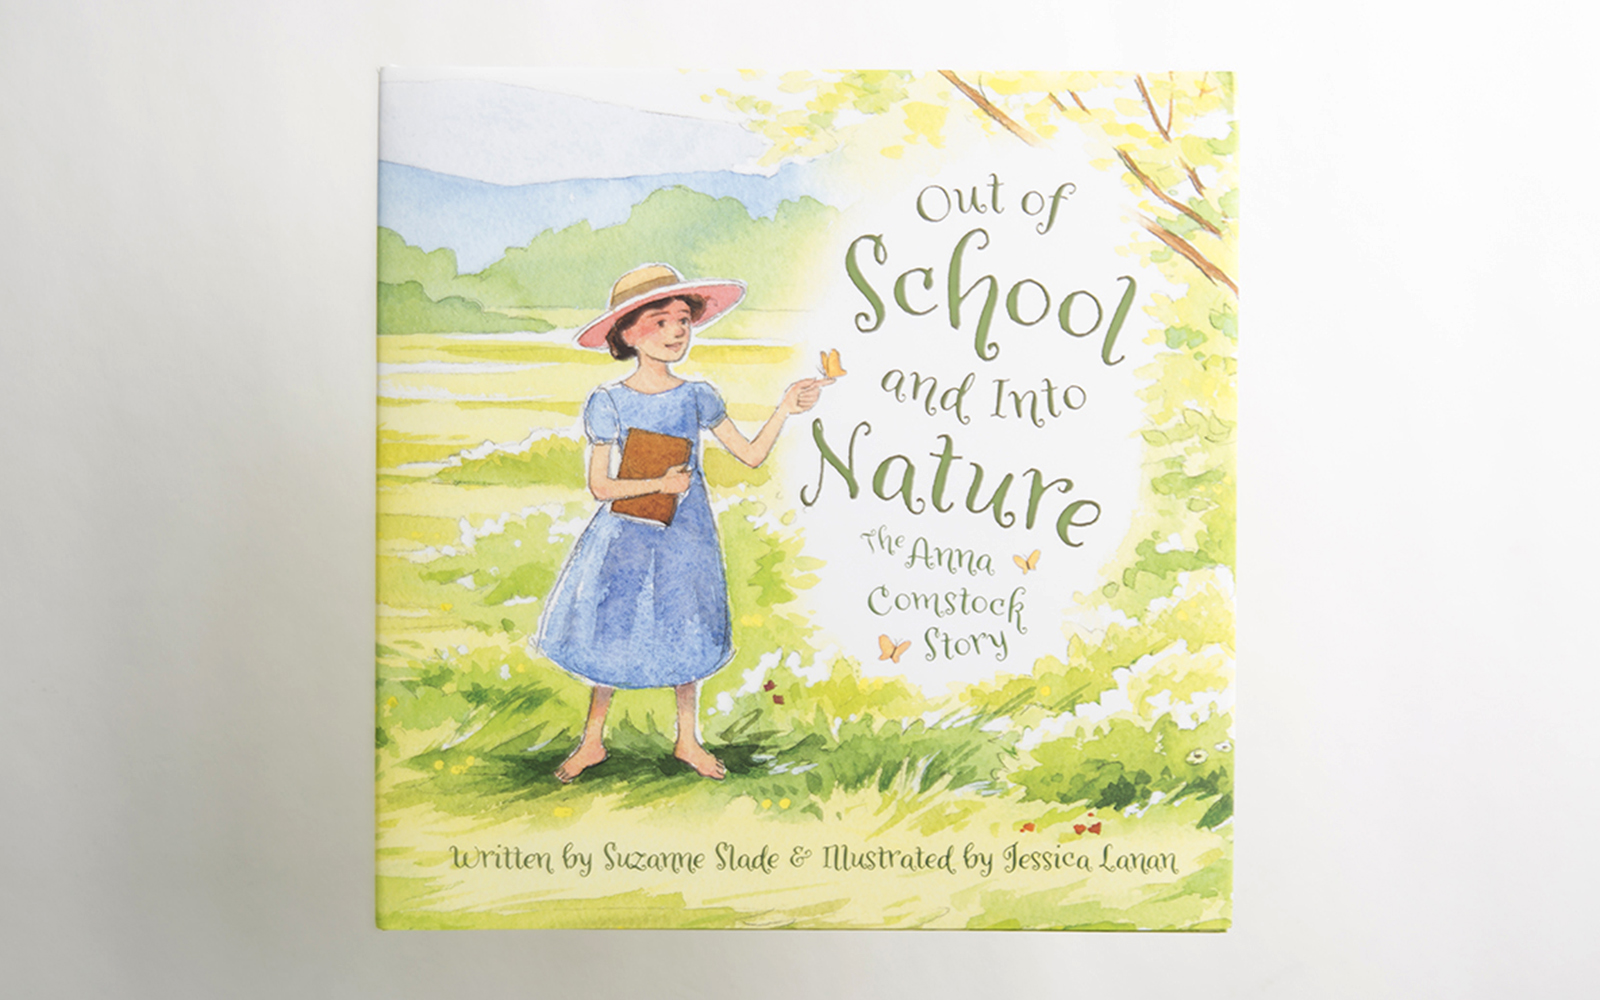 Out of School and Into Nature Suzanne Slade 2017 SONWA winner - children